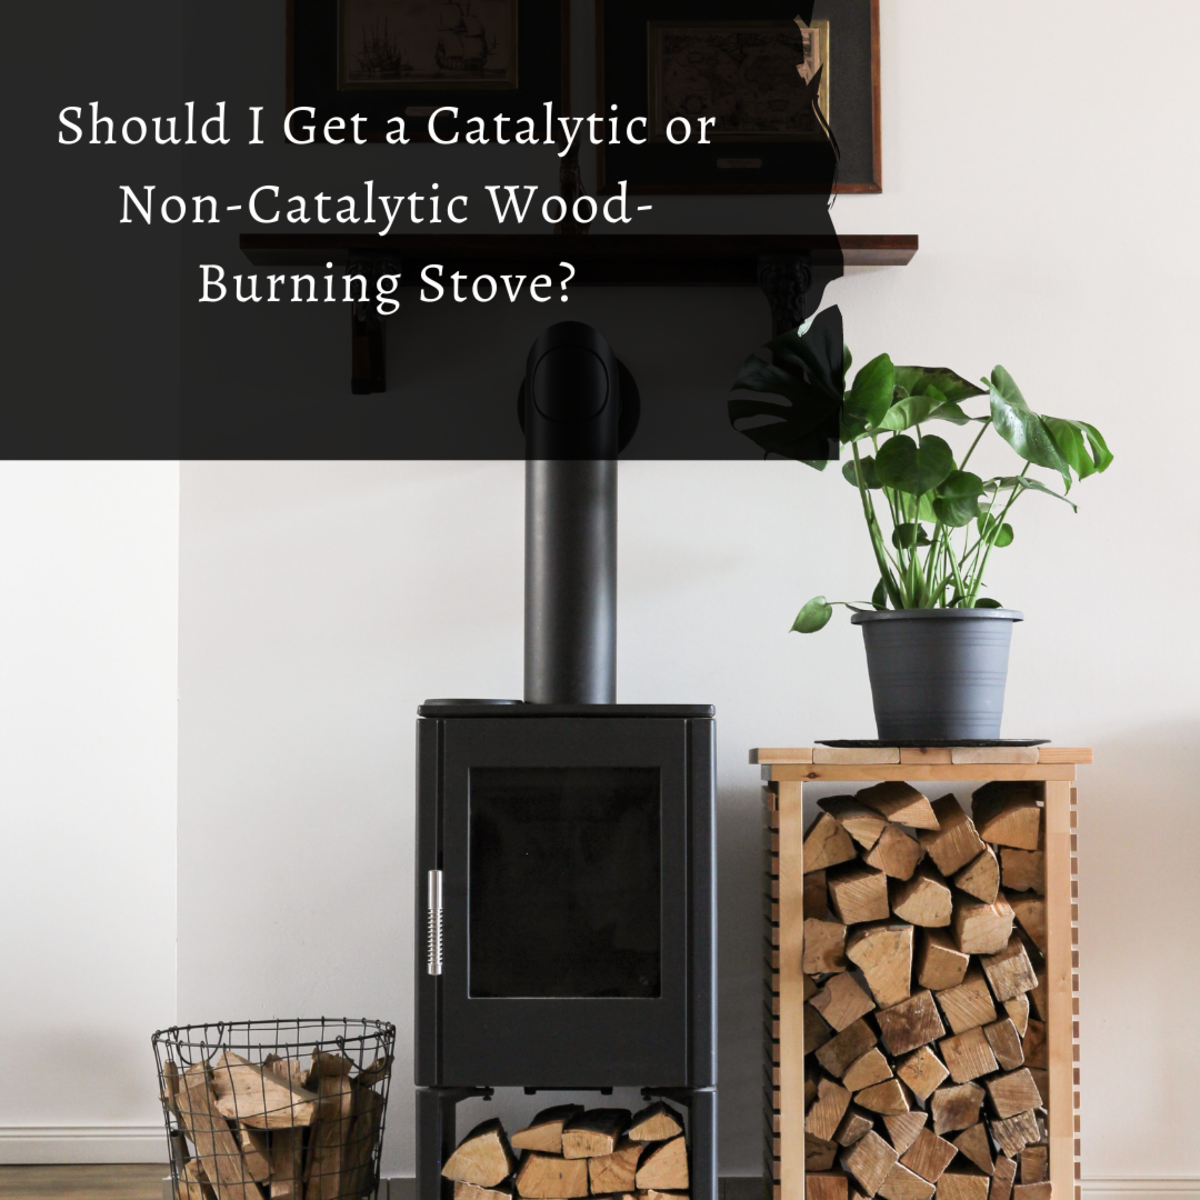 Picking which stove is right for you is an important decision that can be made with adequate time and research.